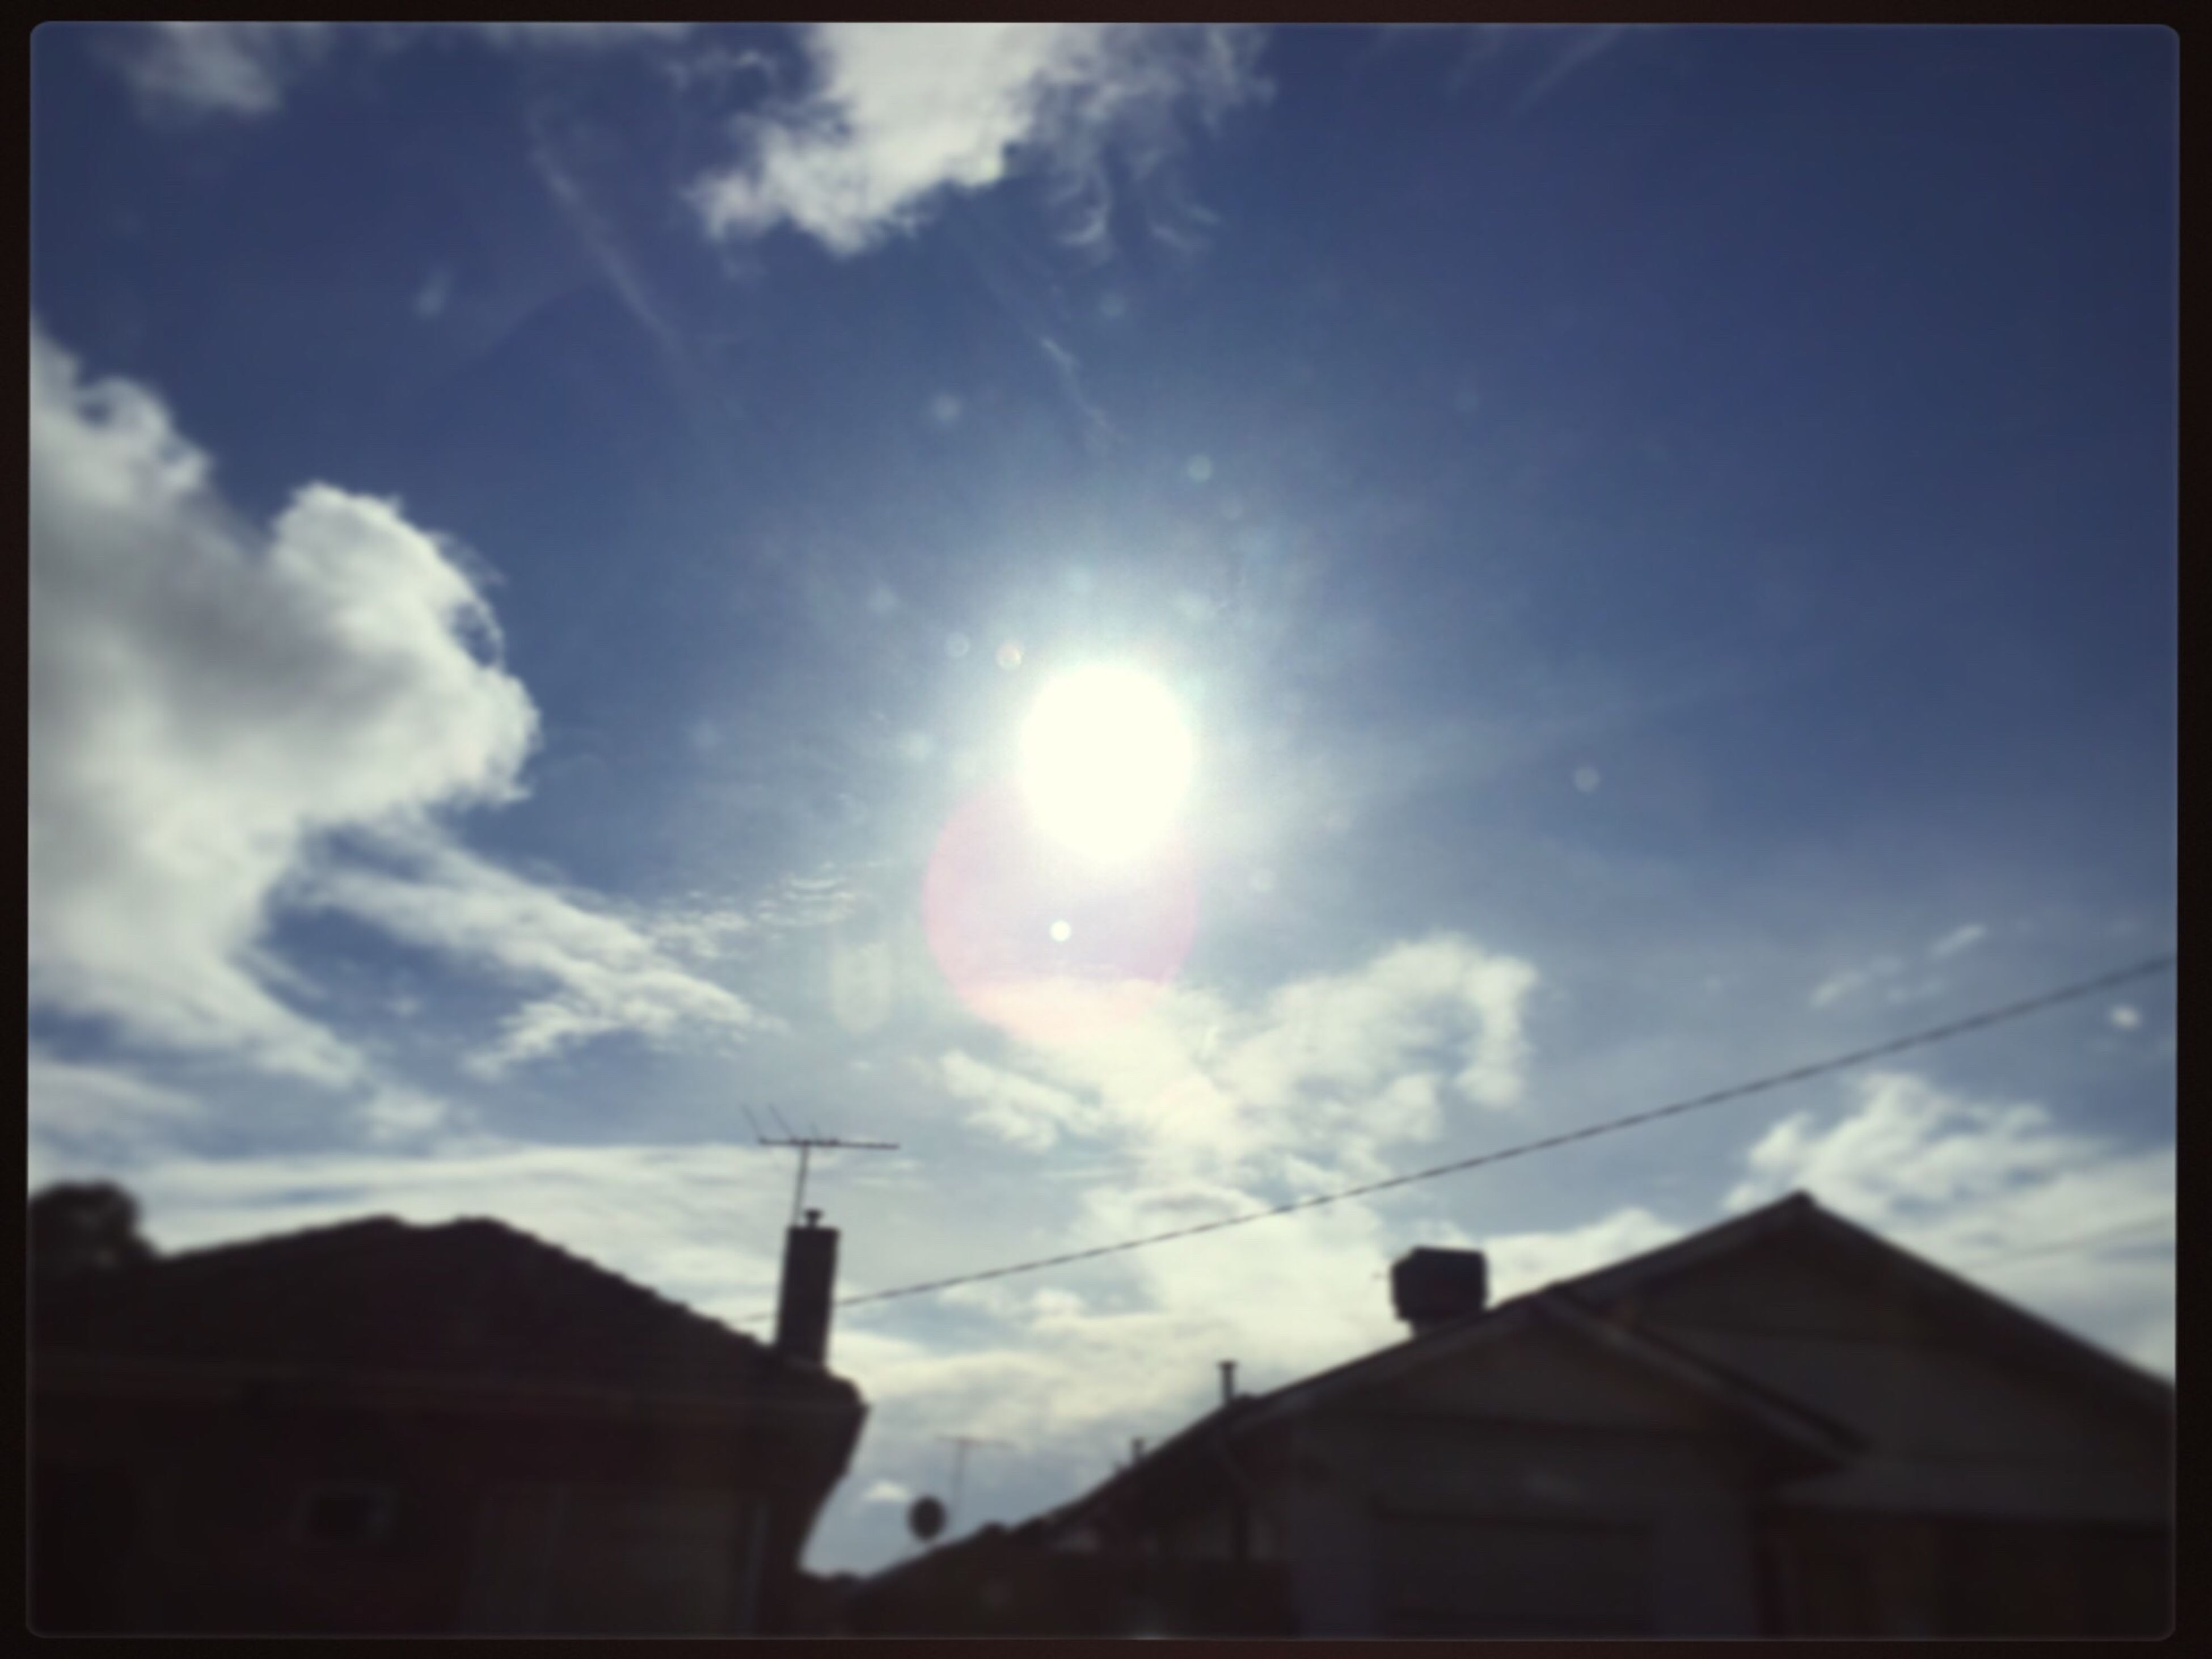 building exterior, architecture, built structure, sun, sky, low angle view, sunlight, sunbeam, lens flare, cloud - sky, cloud, high section, building, outdoors, blue, day, no people, city, sunny, nature, cloudy, bright, weather, beauty in nature